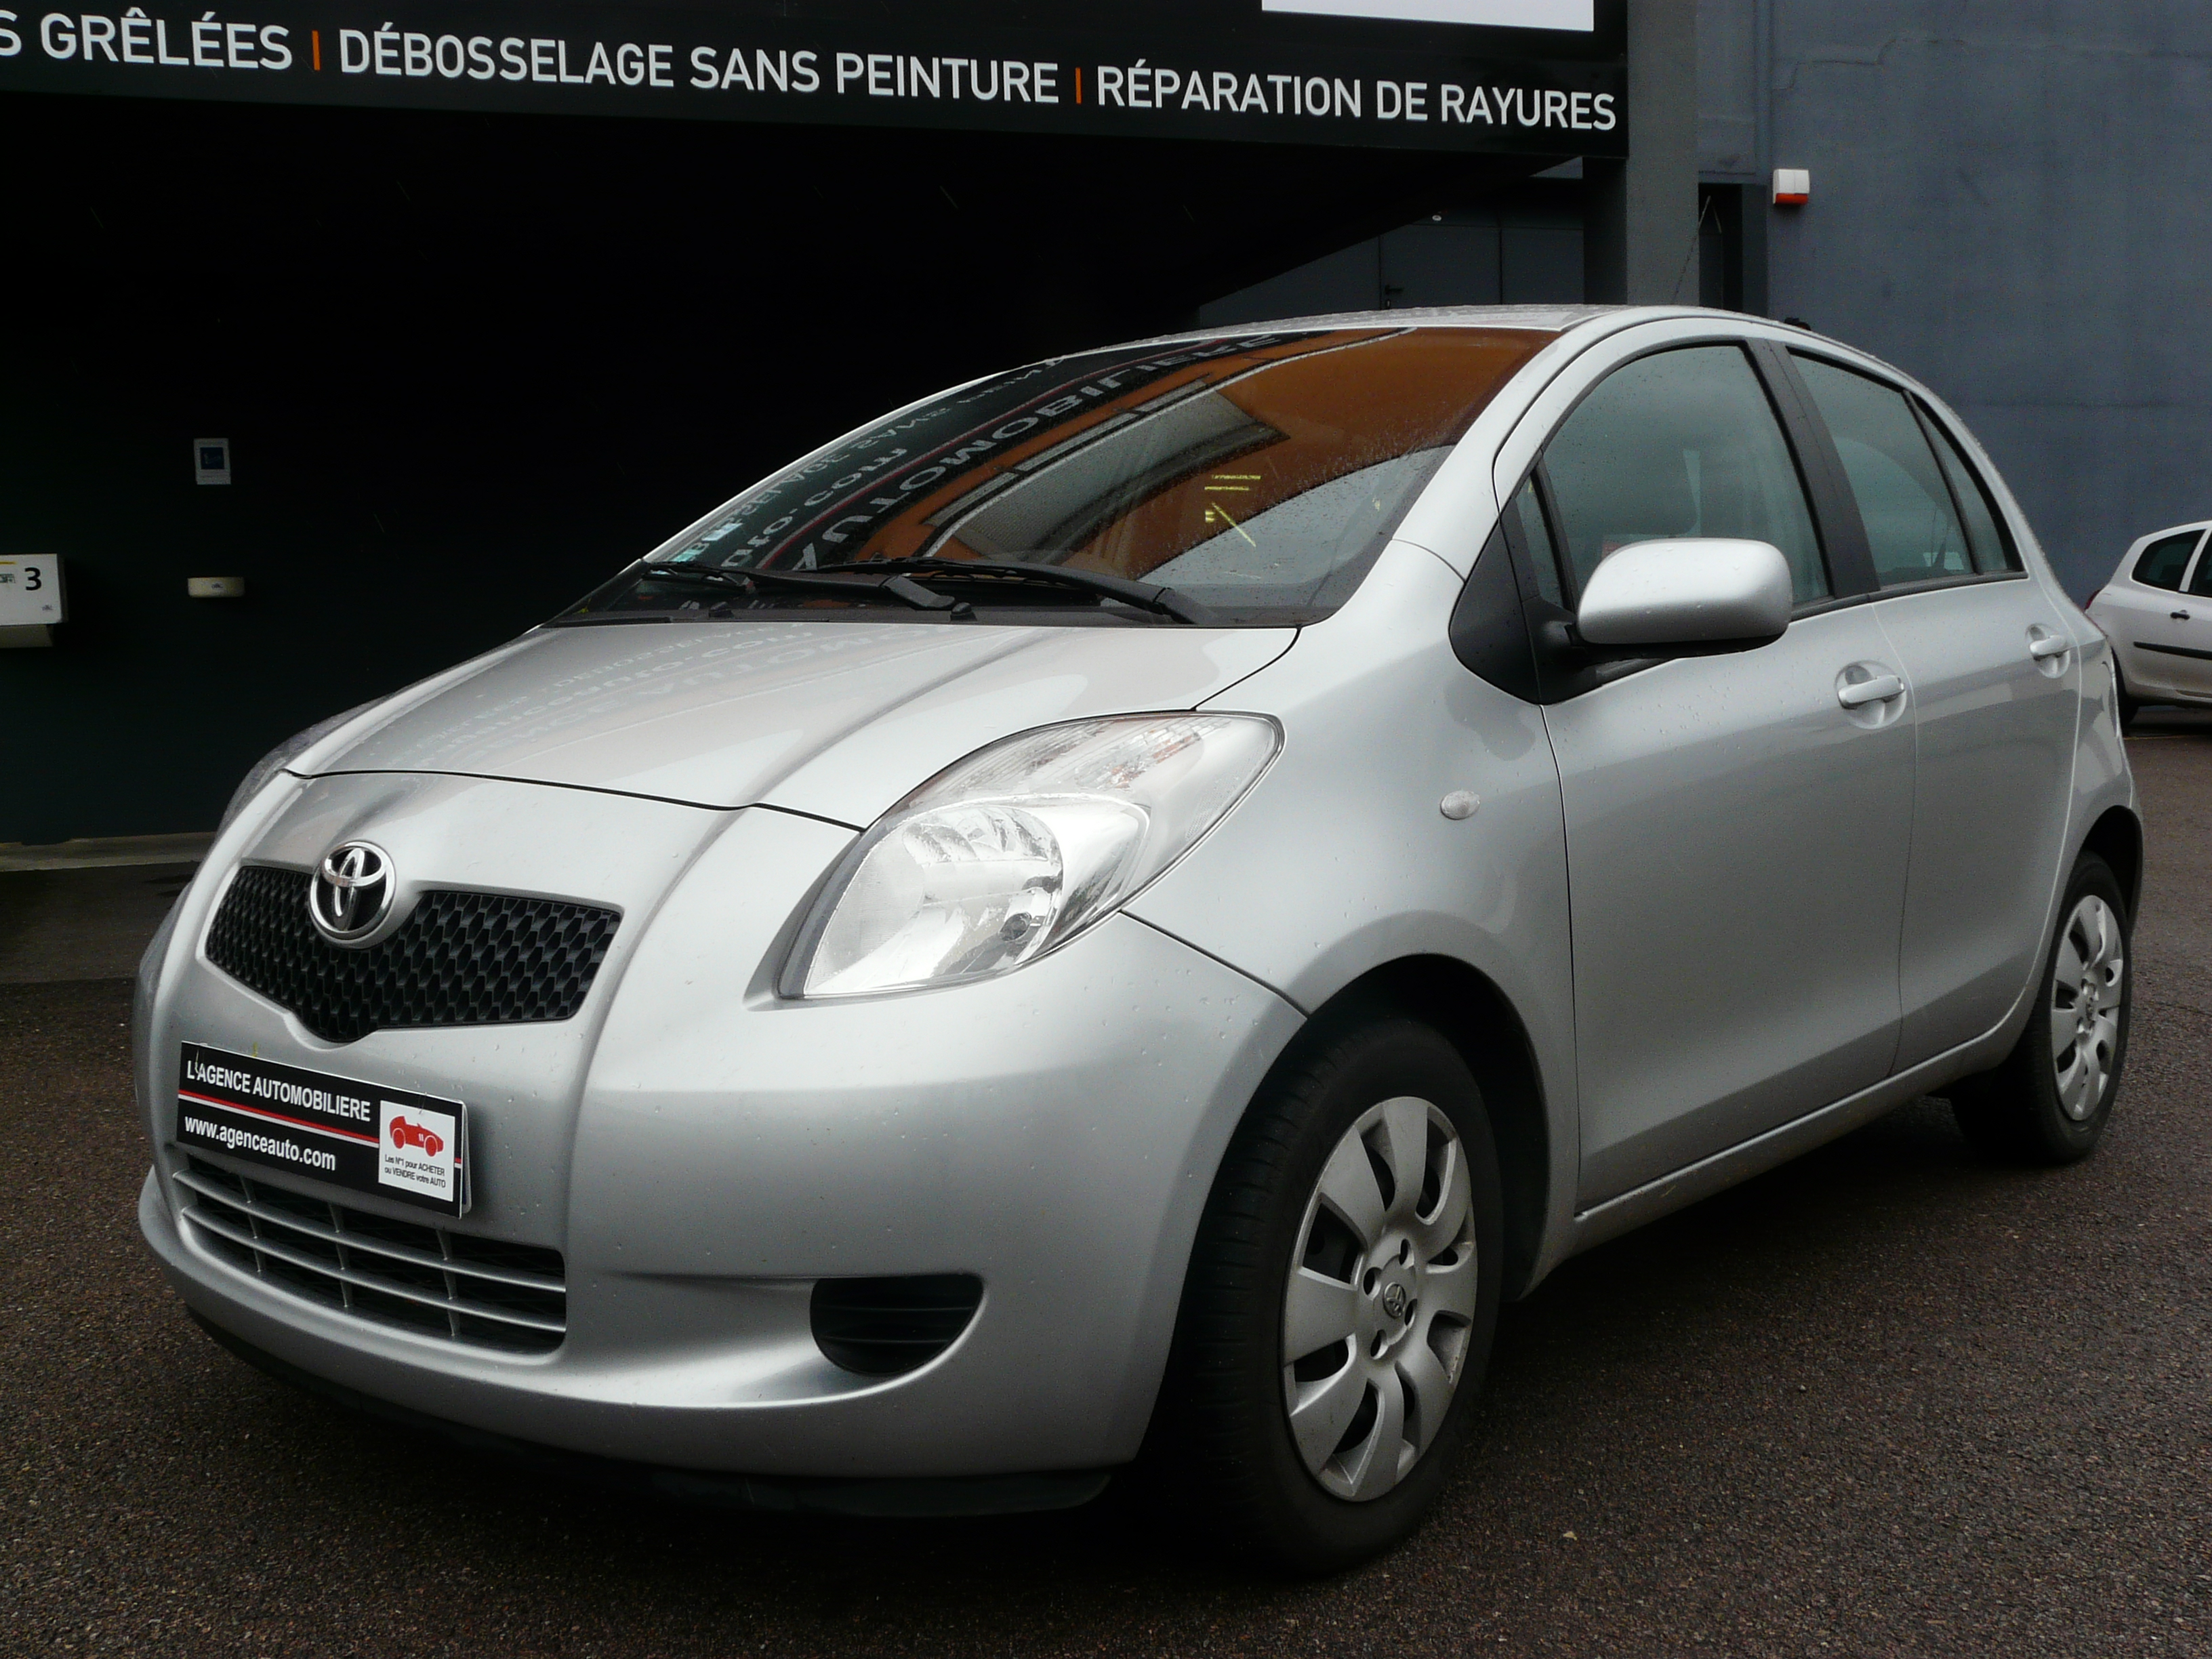 Toyota Yaris 2 13 87cv Occasion Dijon Pas Cher Voiture Occasion